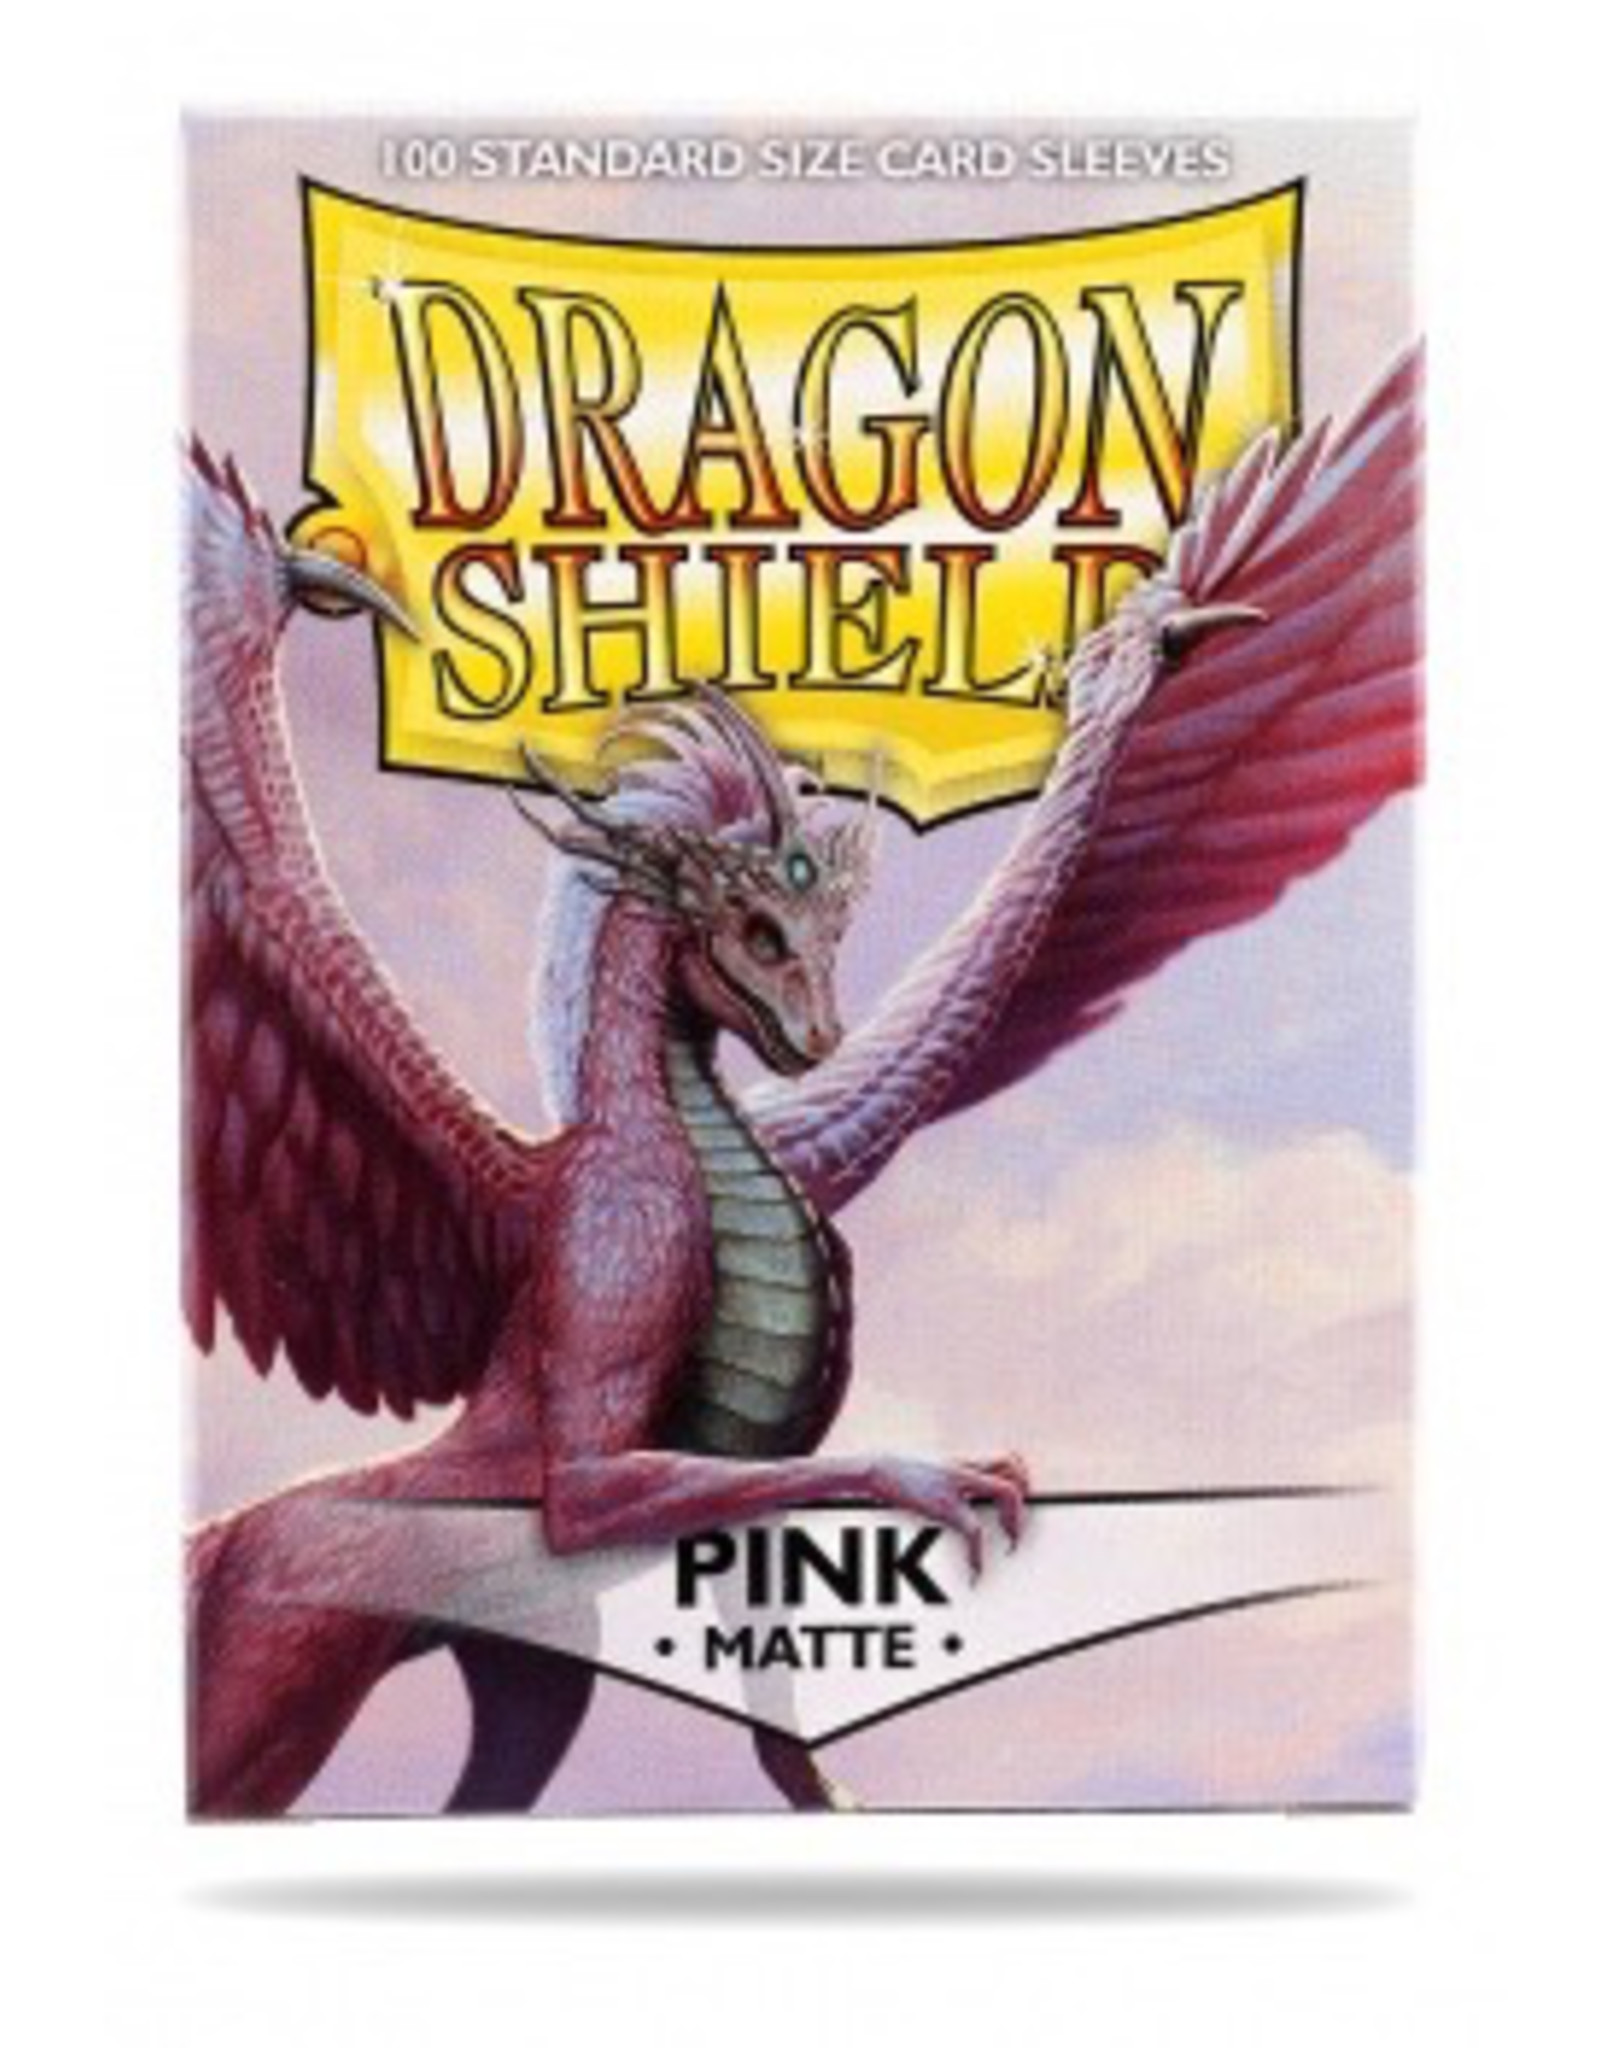 DS - Standard Sleeves Dragon Shield Standard Sleeves - Matte Pink (100 Sleeves)